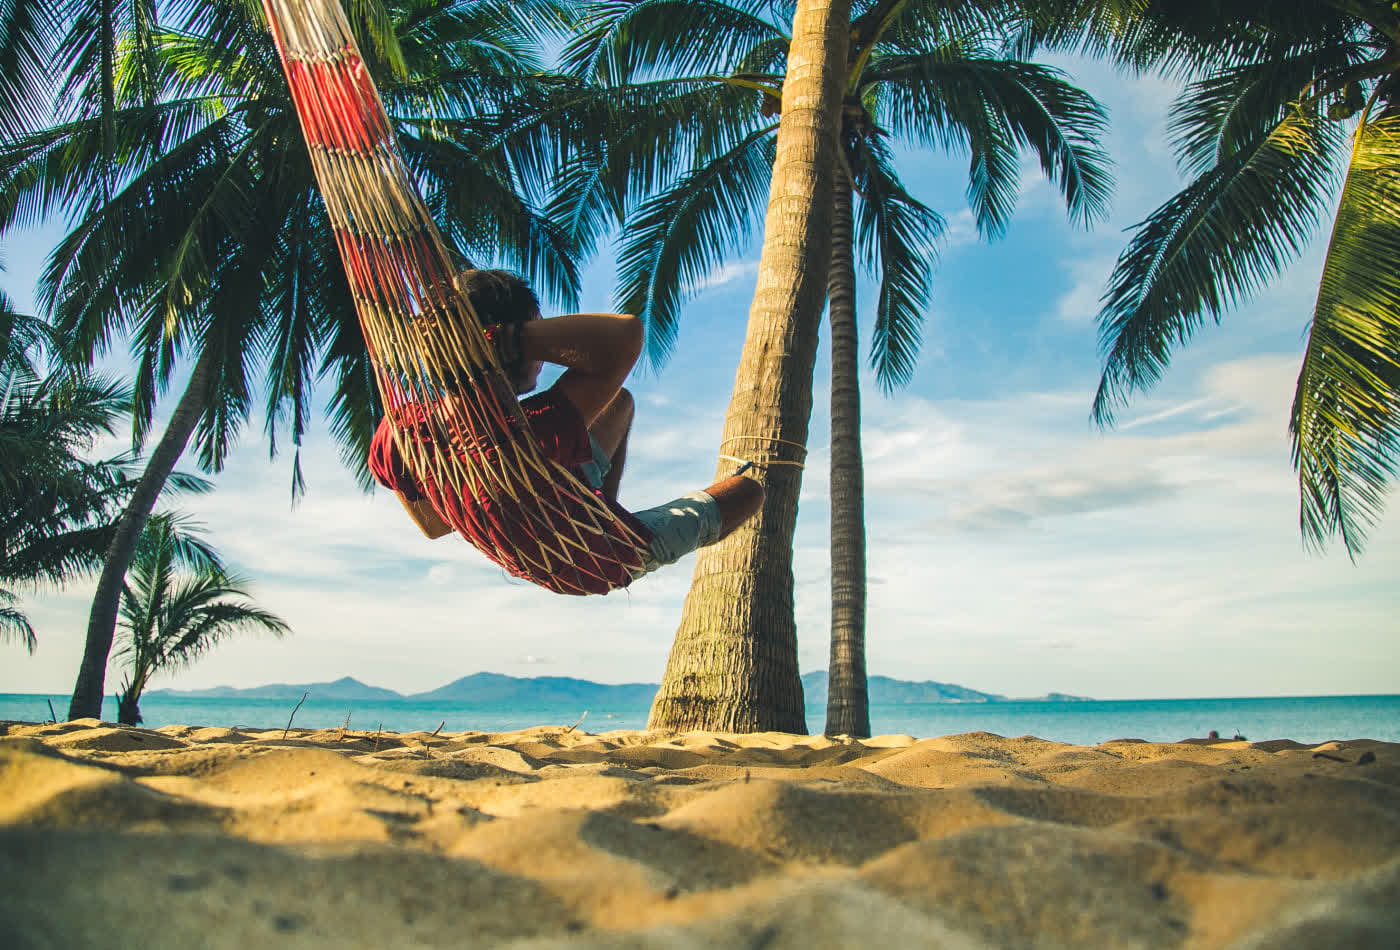 How To Retire: Don't Focus On Retirement